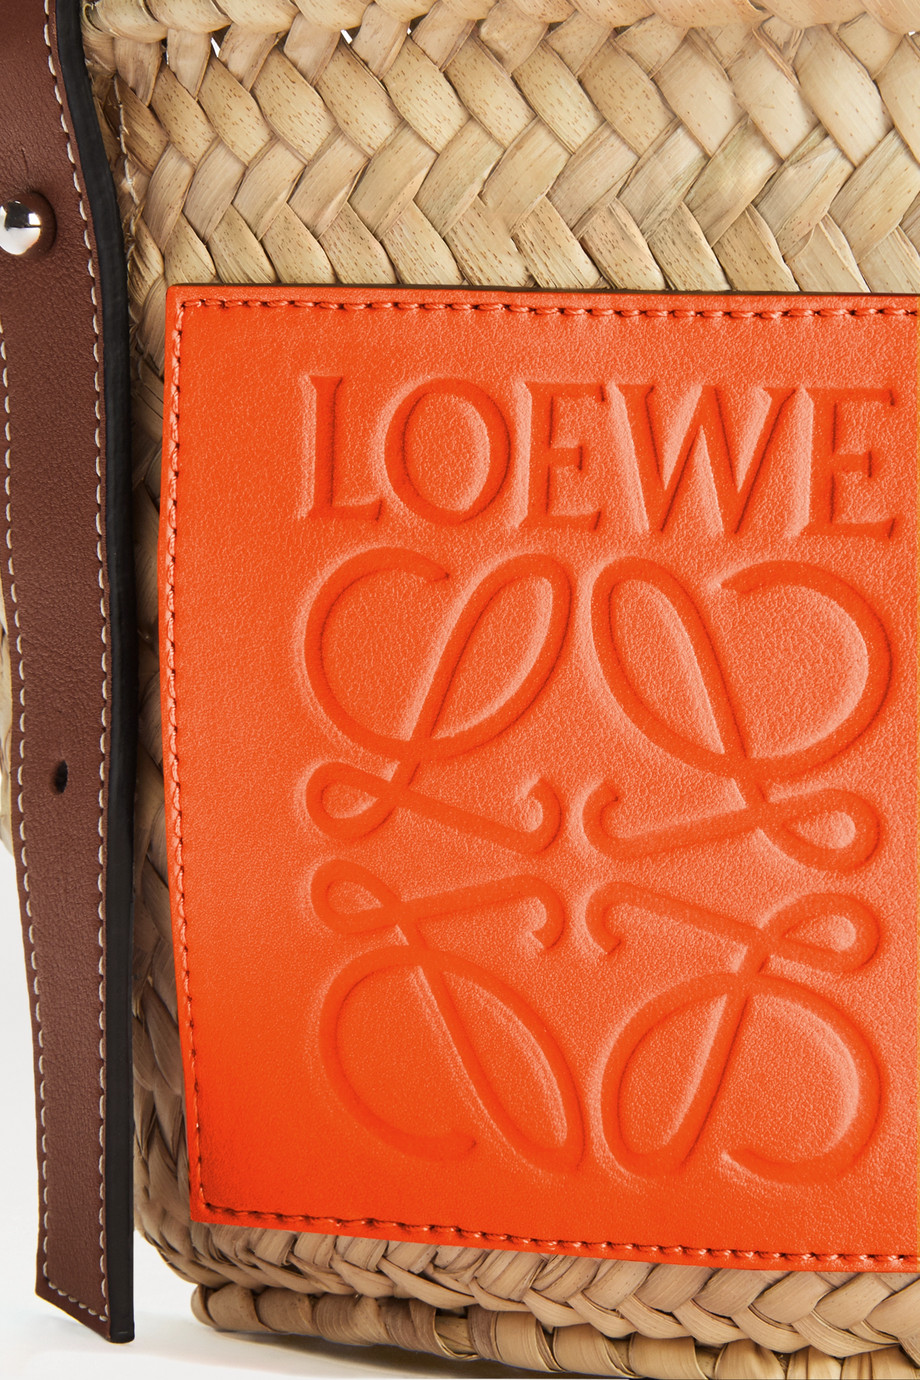 Loewe + Paula's Ibiza small leather-trimmed raffia tote